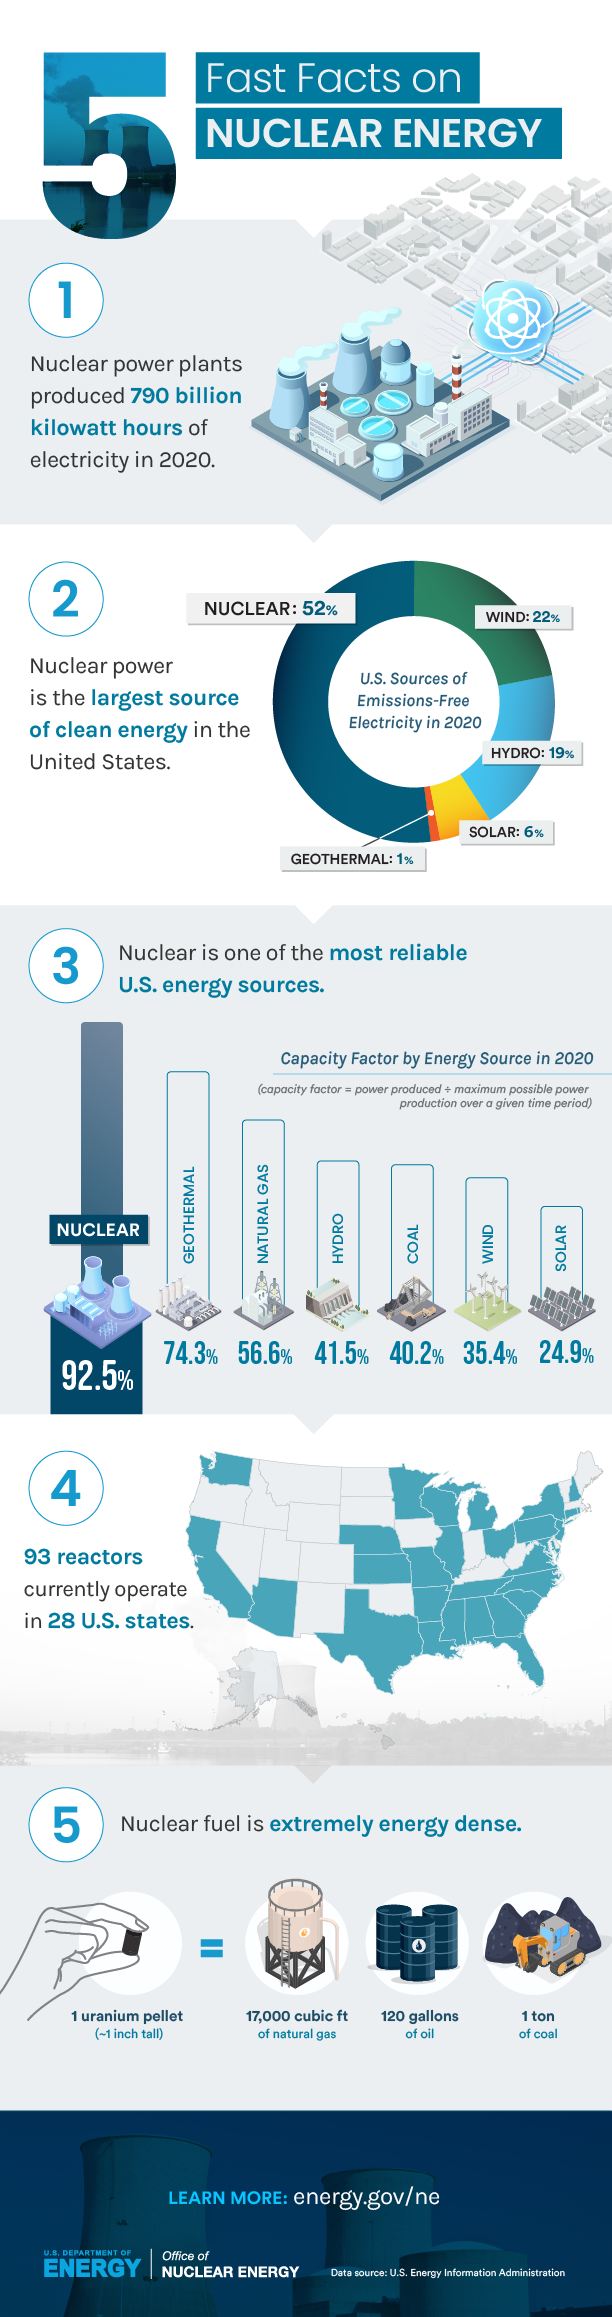 5 Fast Facts on Nuclear infographic